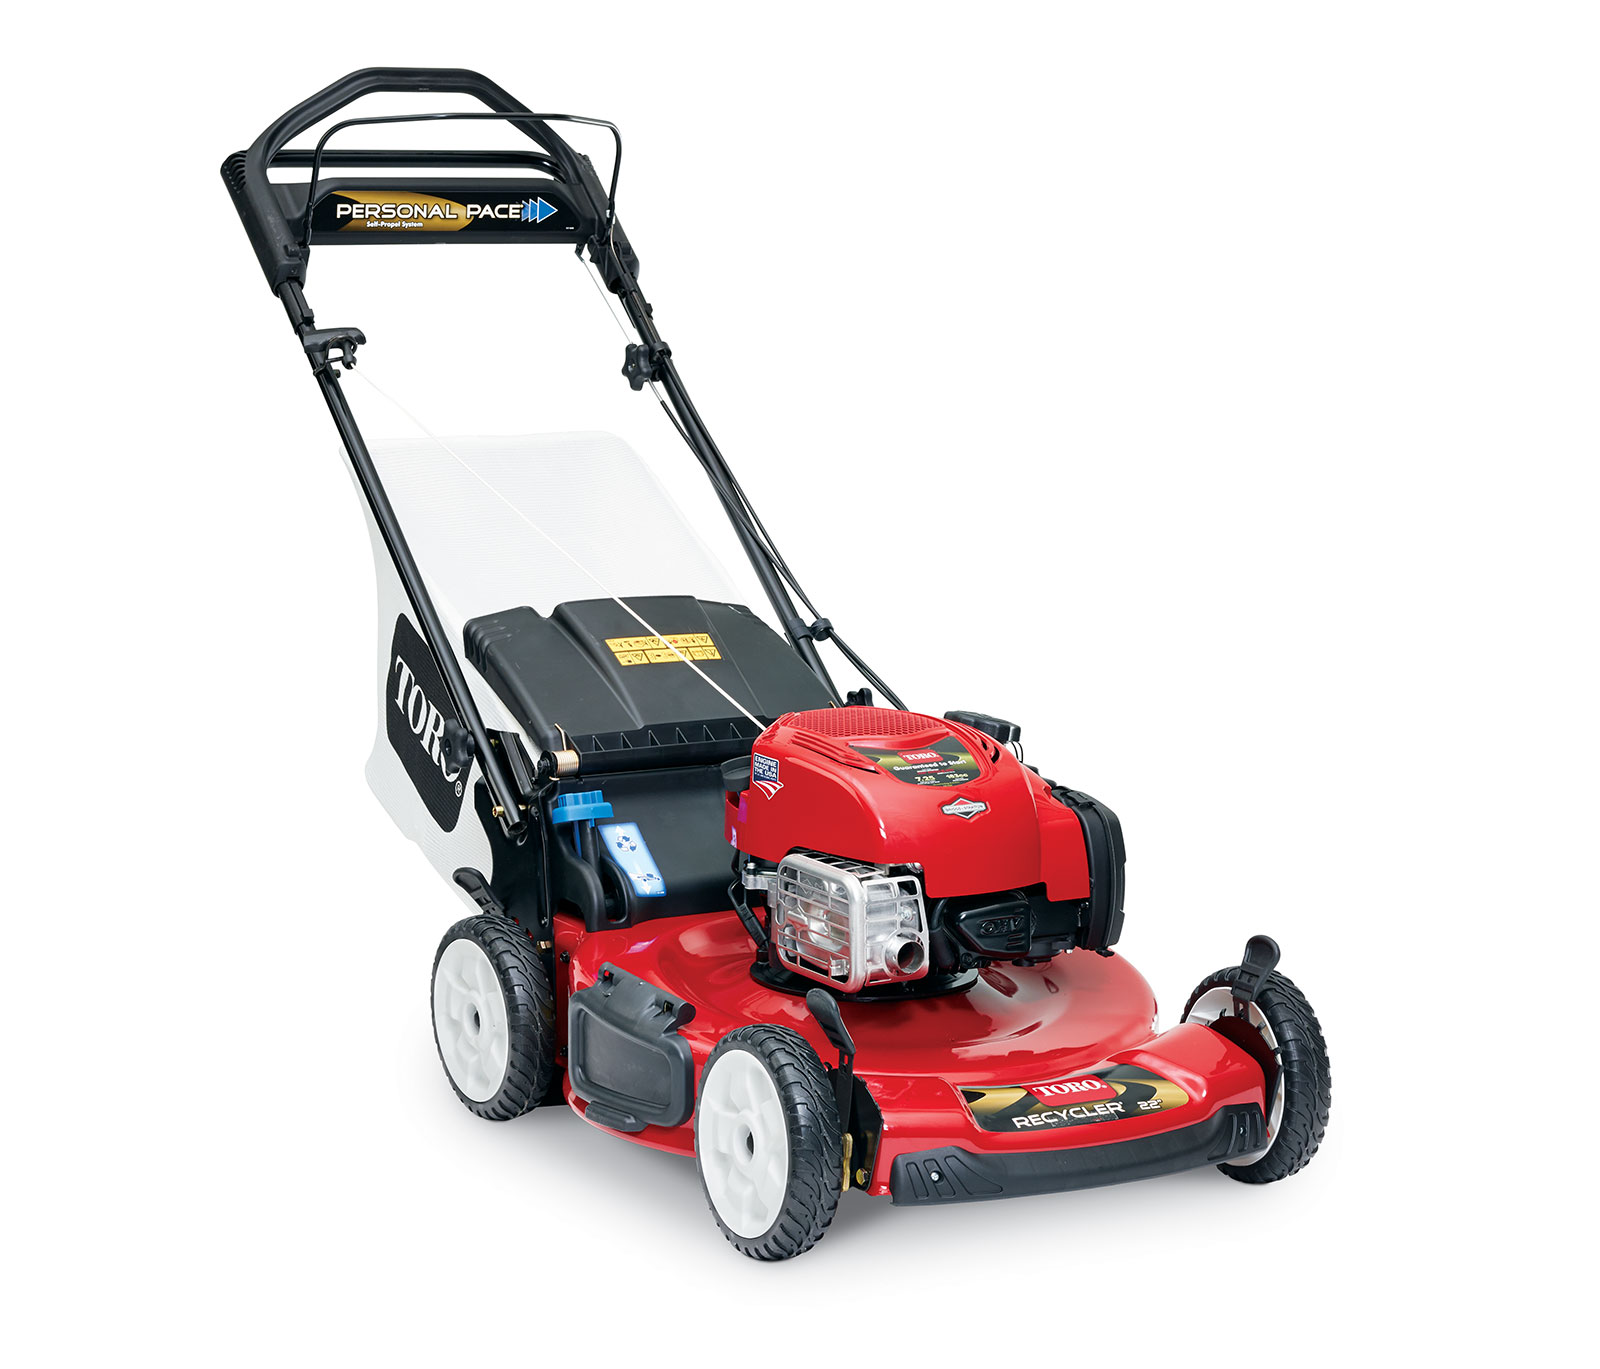 hight resolution of 22 56cm personal pace mower 20332